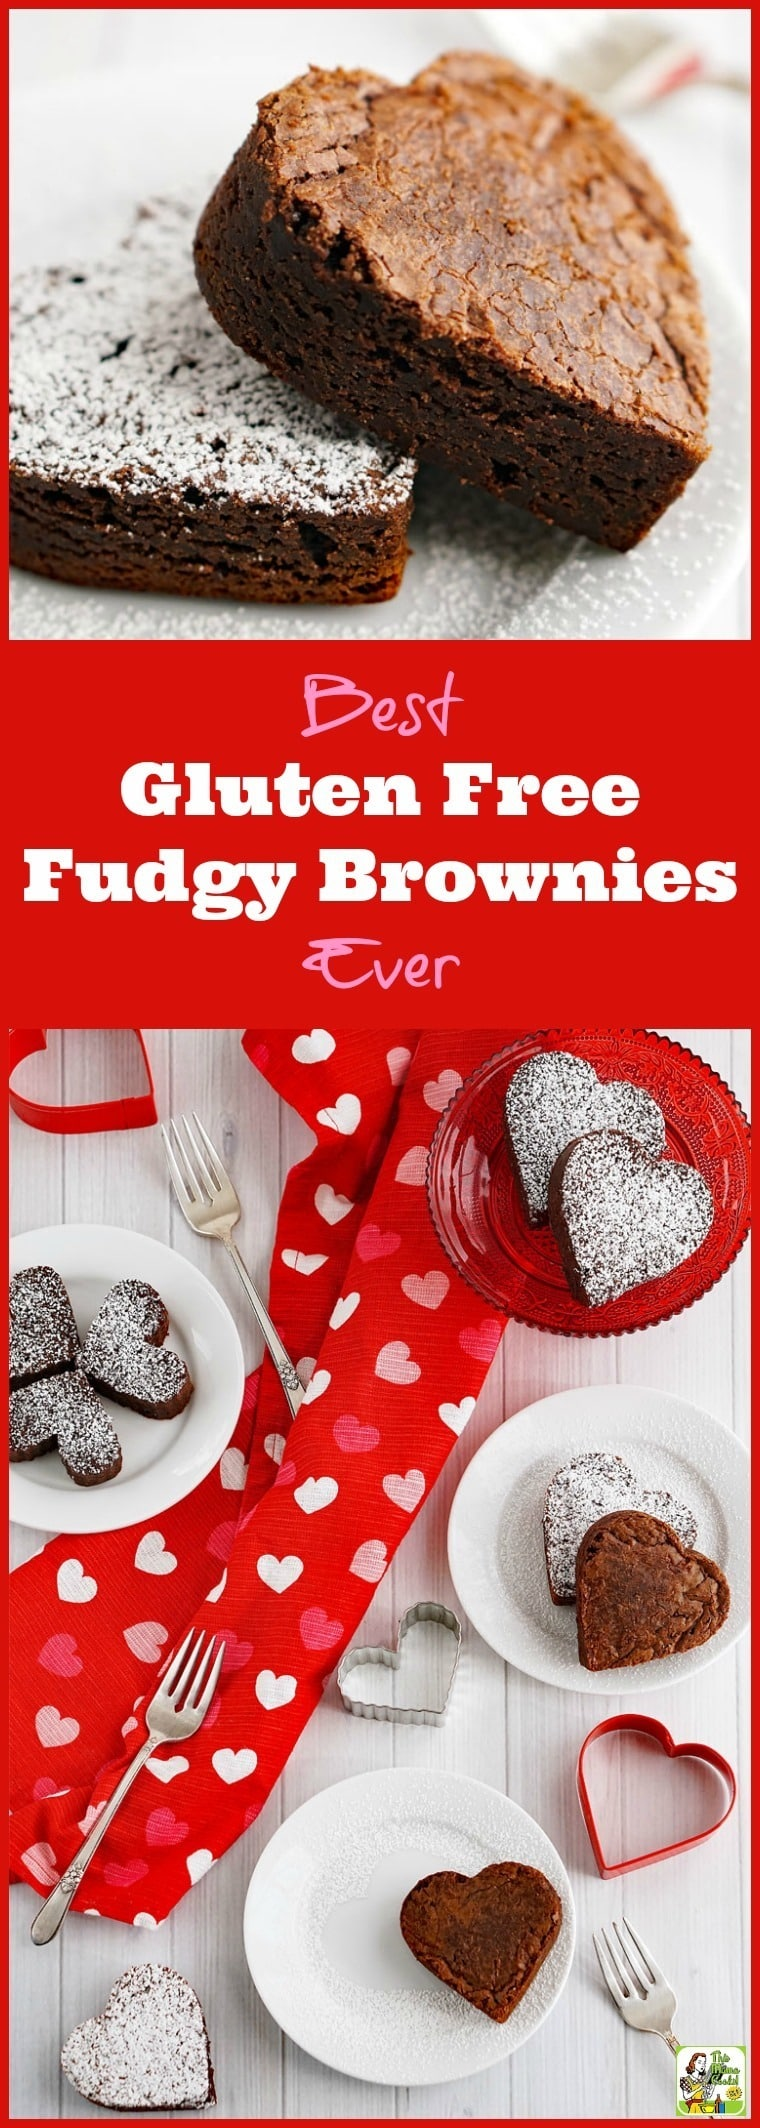 Looking for a gluten free fudgy brownie recipe? Try the Best Gluten Free Fudgy Brownies Ever! Click to get this easy gluten free brownie recipe. Perfect for Valentine's Day! #valentinesday #brownies #glutenfree #chocolate #dessert #hearts #glutenfreedessert #fudgybrownies #glutenfreebrownies #valentinesdaydessert #glutenfreebaking #heartshaped #bestbrowniesever